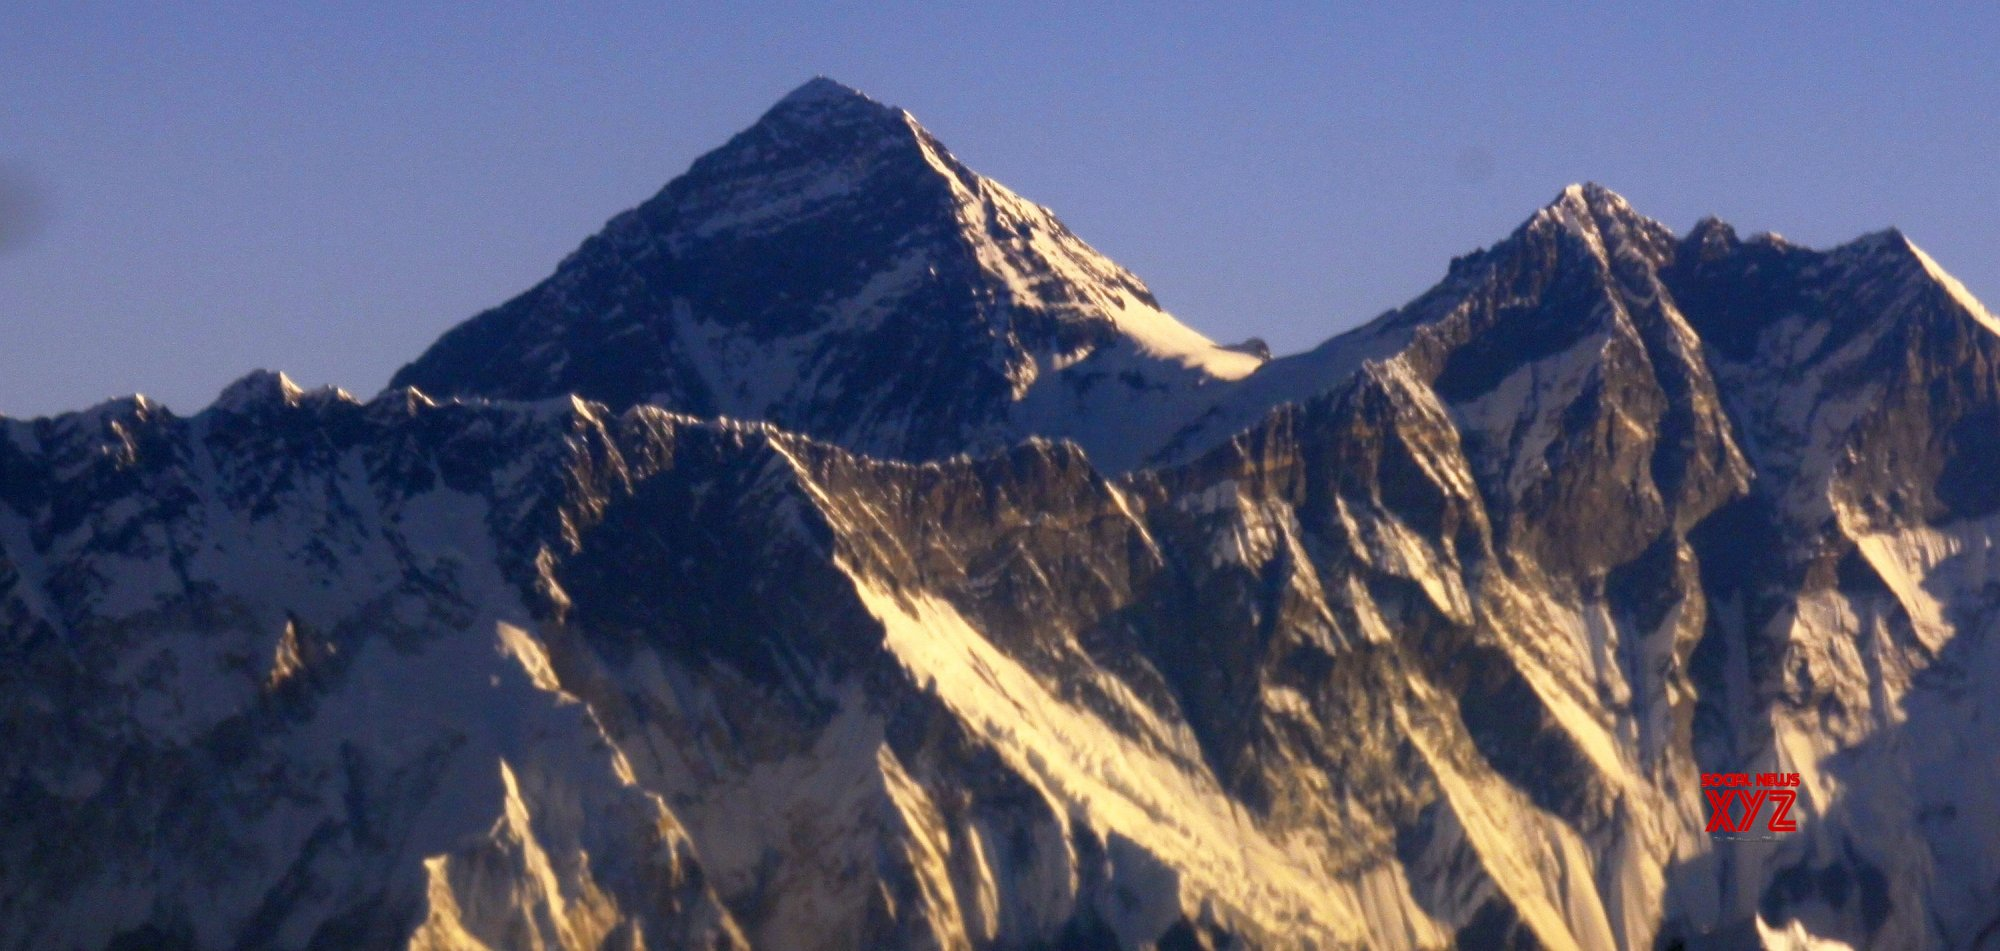 Climate change will melt vast parts of Himalayas: Study